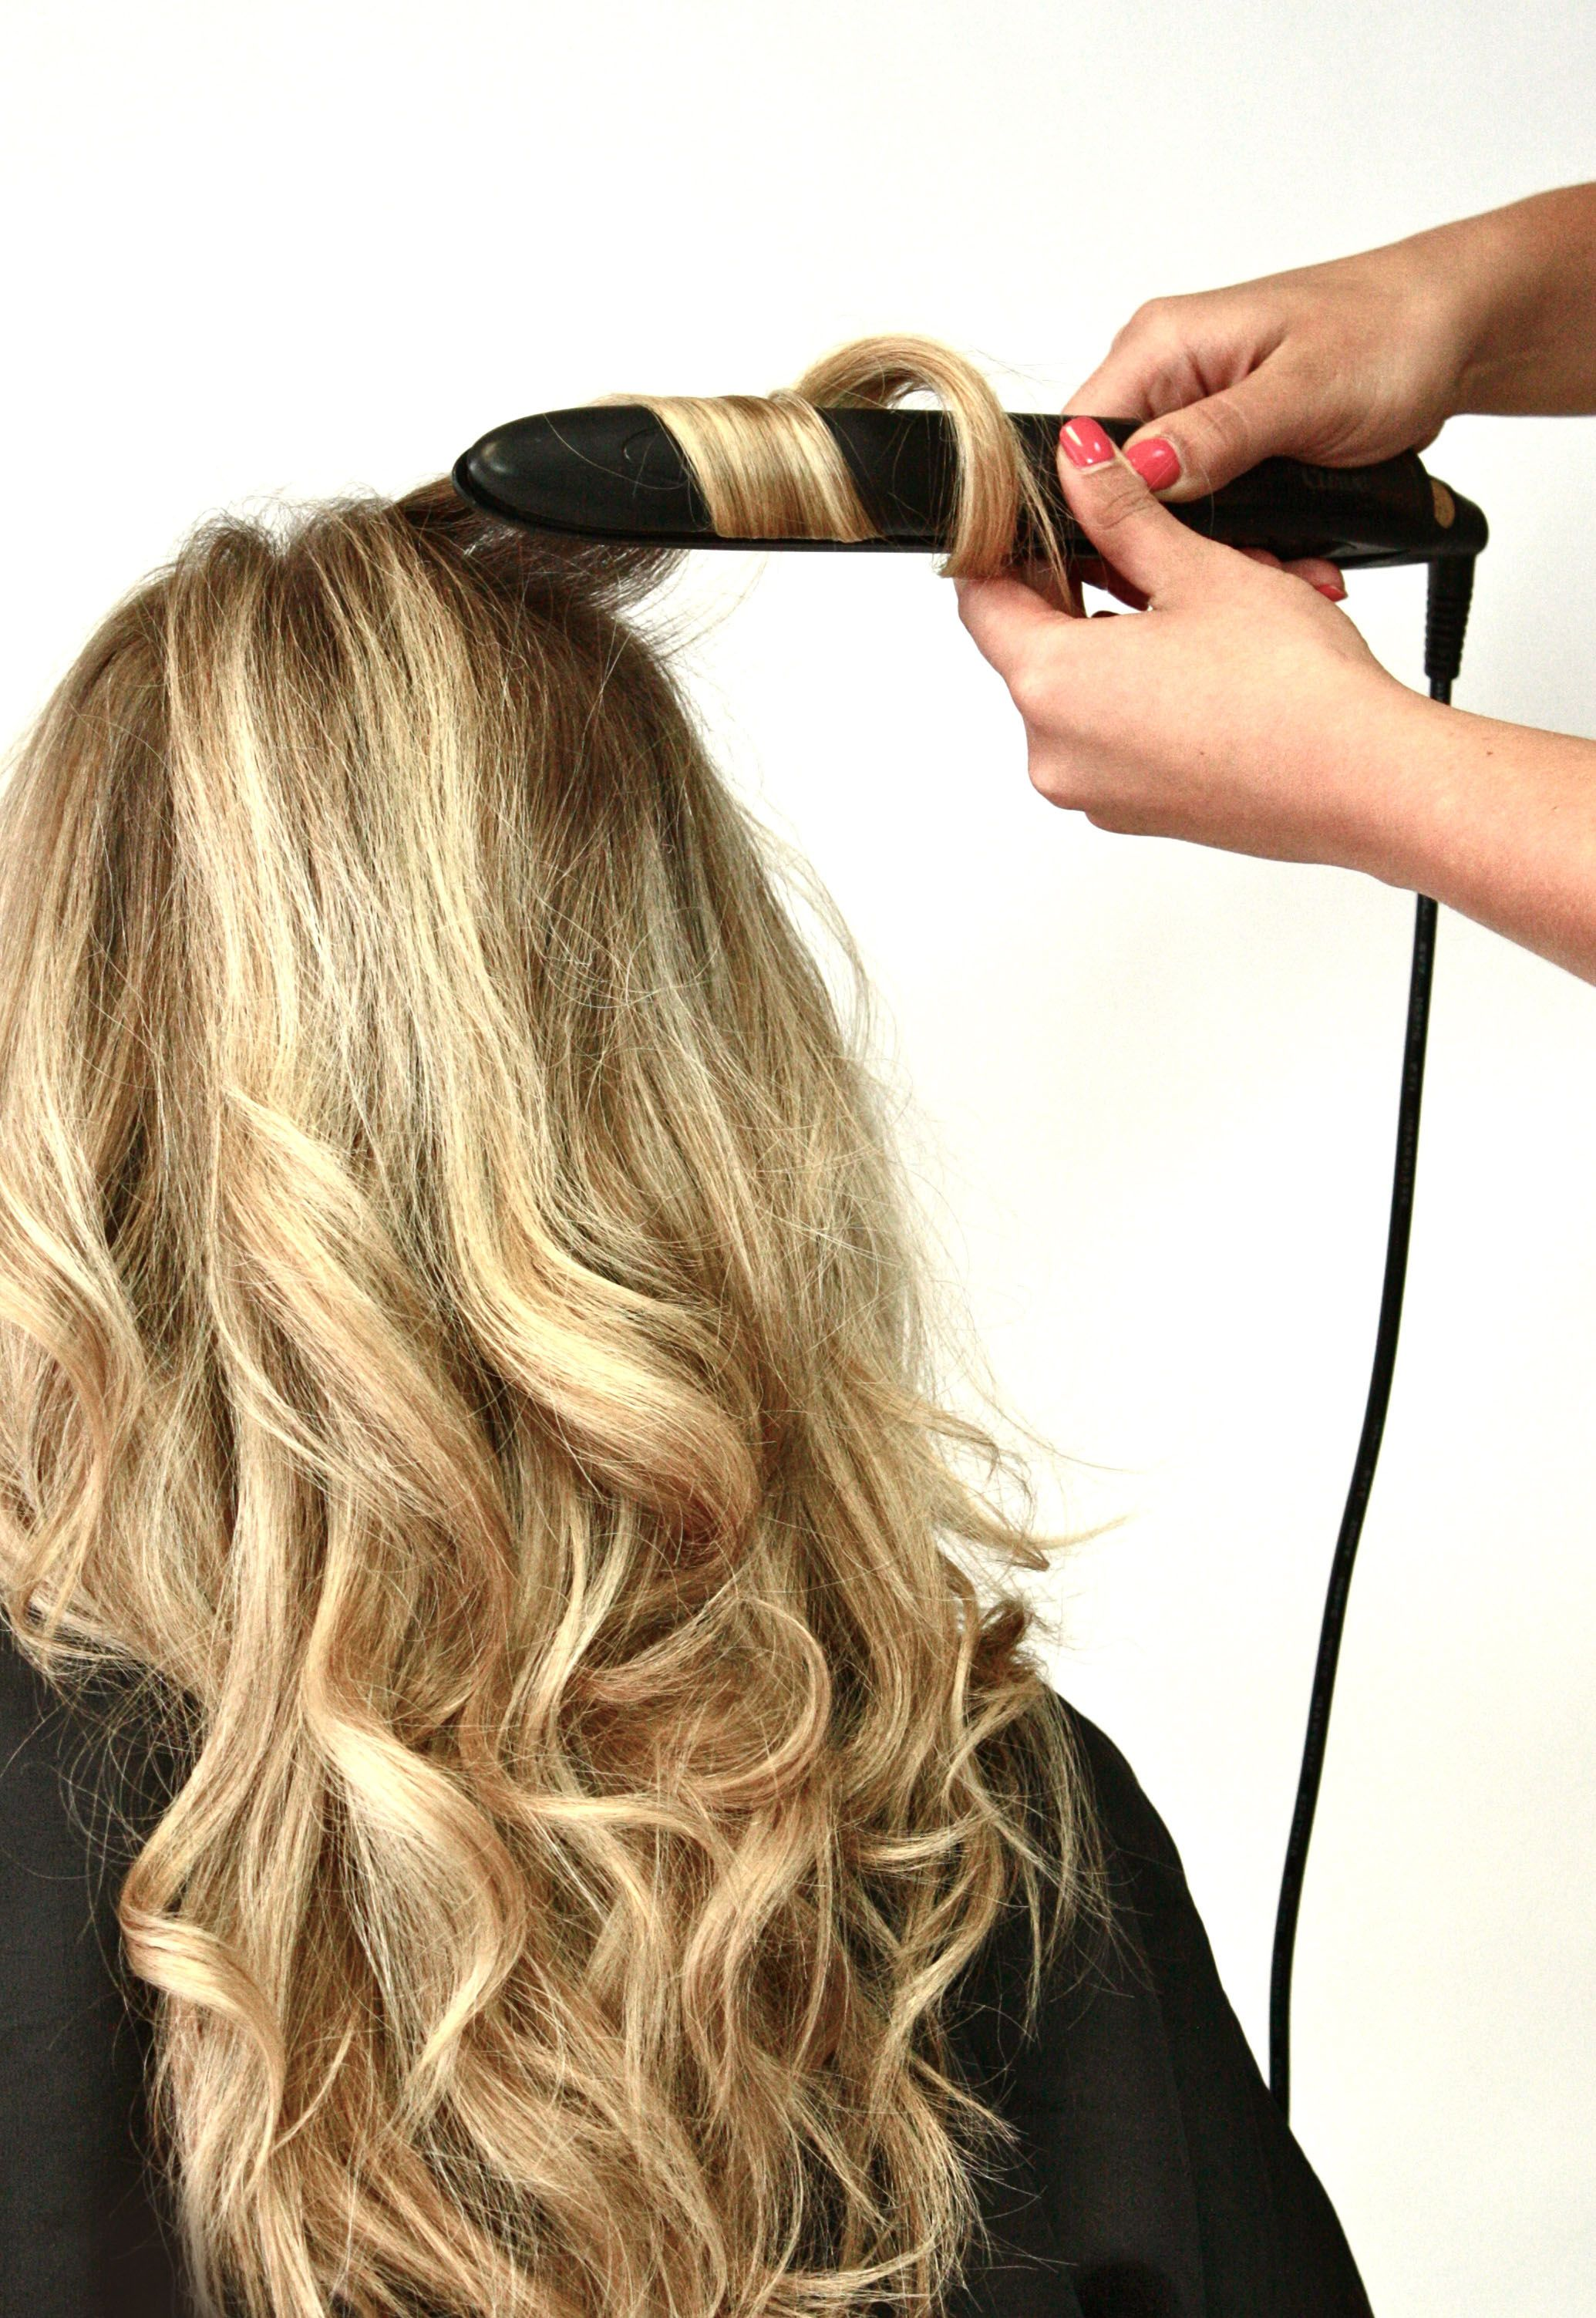 a466dcc41a47951d4cd86356cfaf1a30 - How To Get Great Curls With A Flat Iron